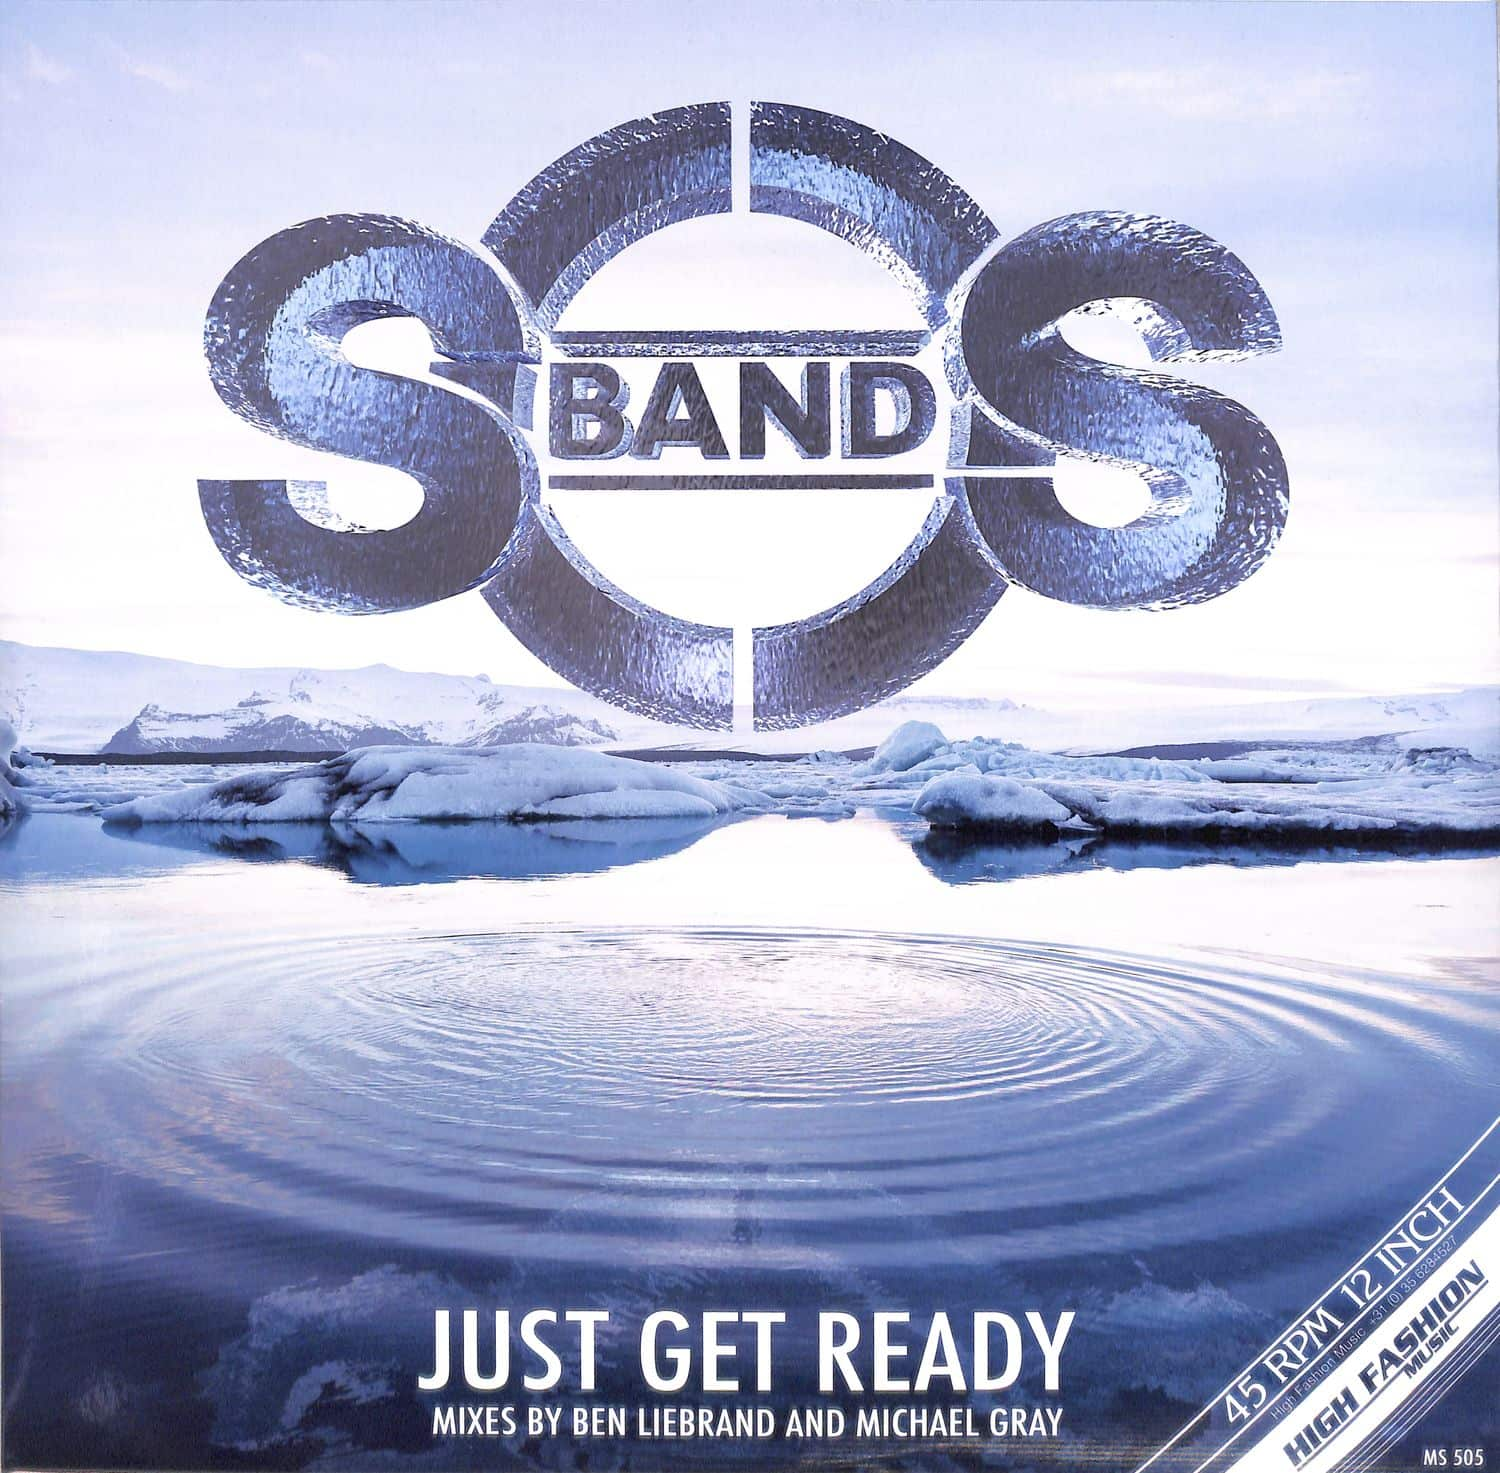 The SOS Band - JUST GET READY